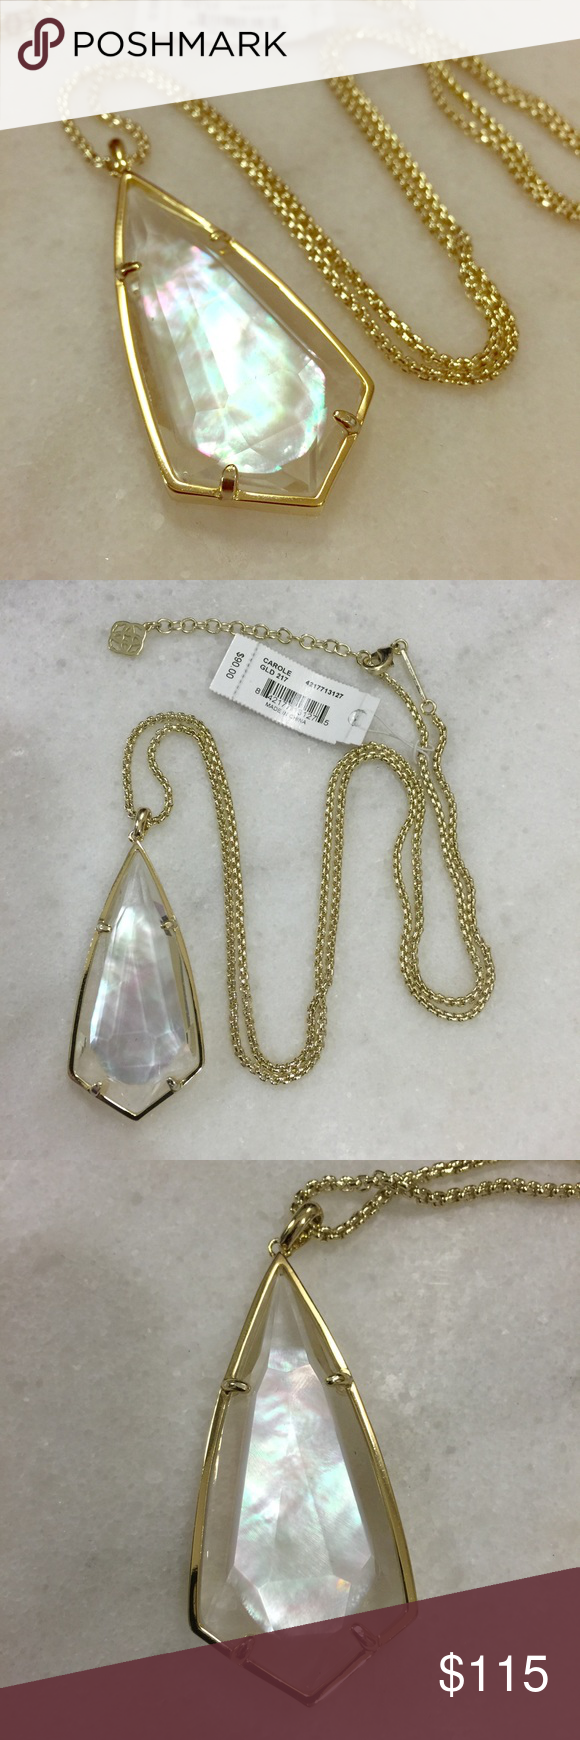 28+ What stores carry kendra scott jewelry ideas